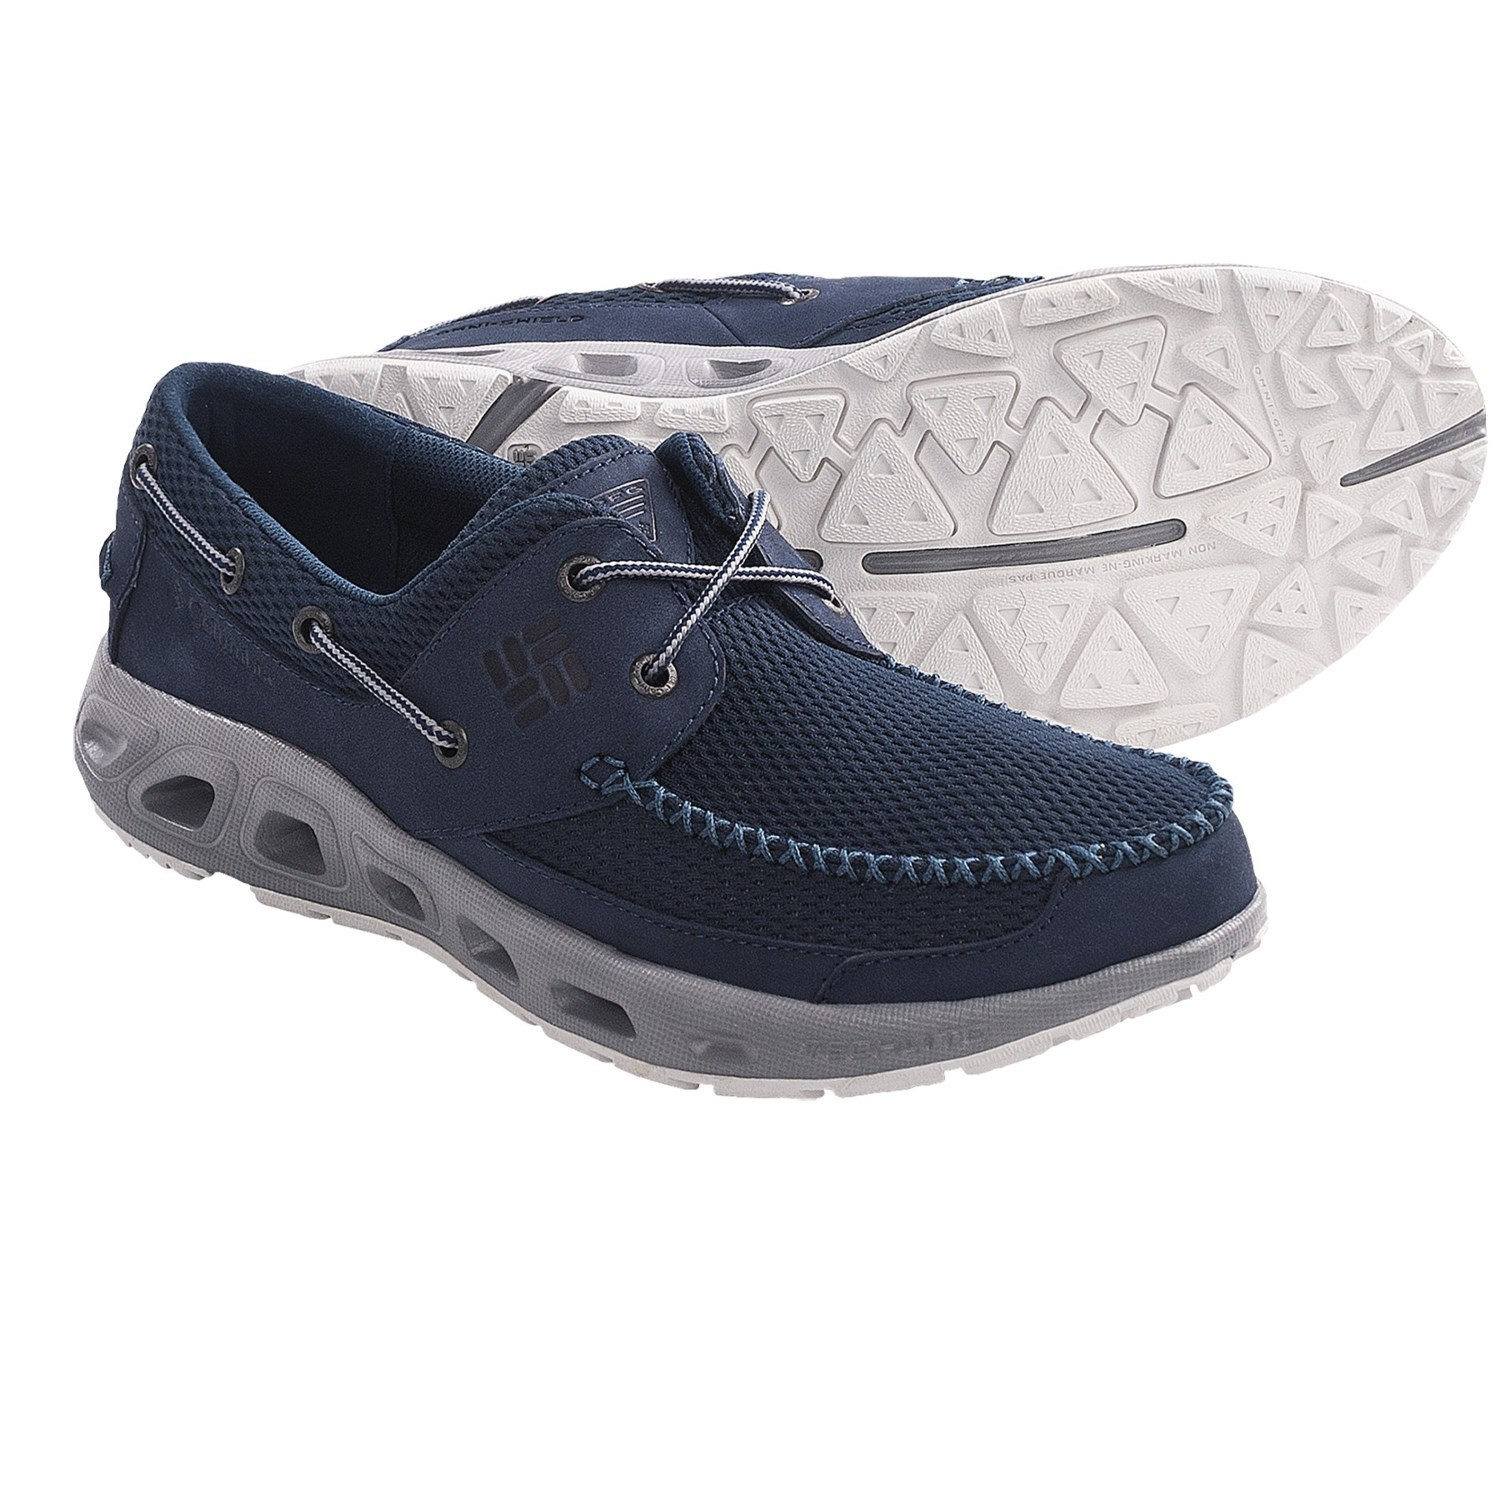 Columbia sportswear boatdrainer pfg boat shoes for men for Columbia fishing shoes